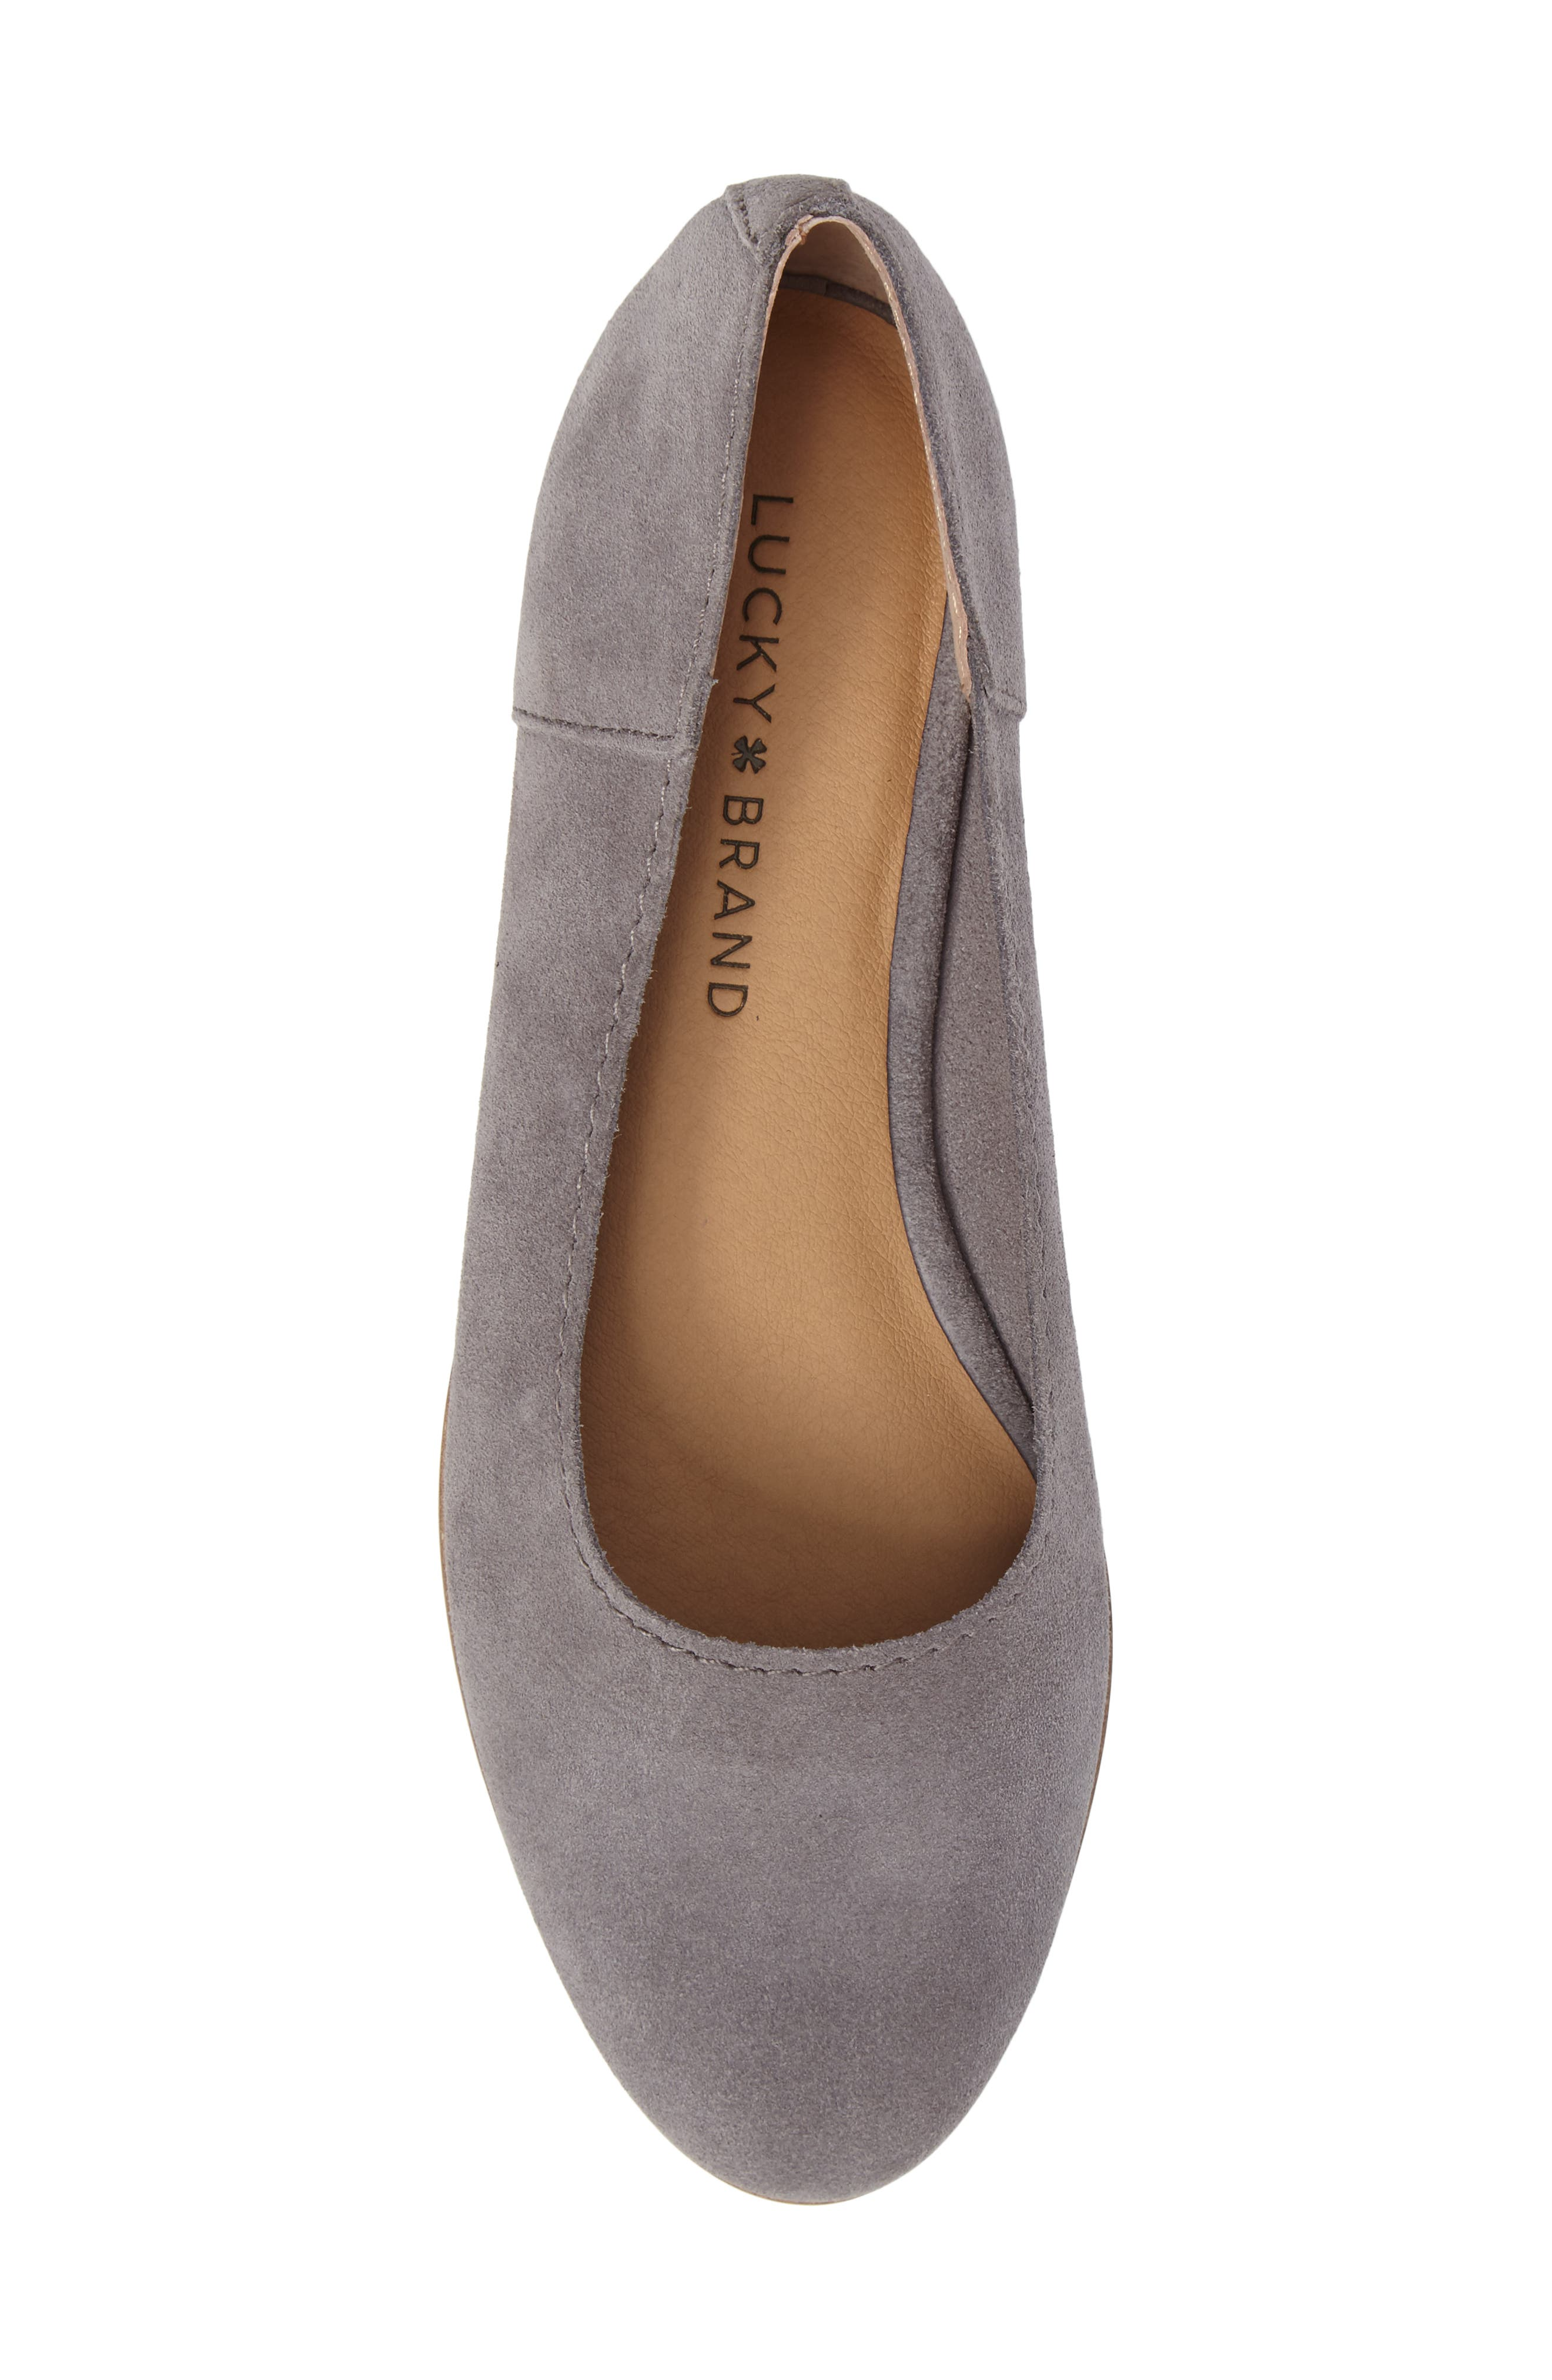 Calandra Flat,                             Alternate thumbnail 5, color,                             Steel Grey Suede